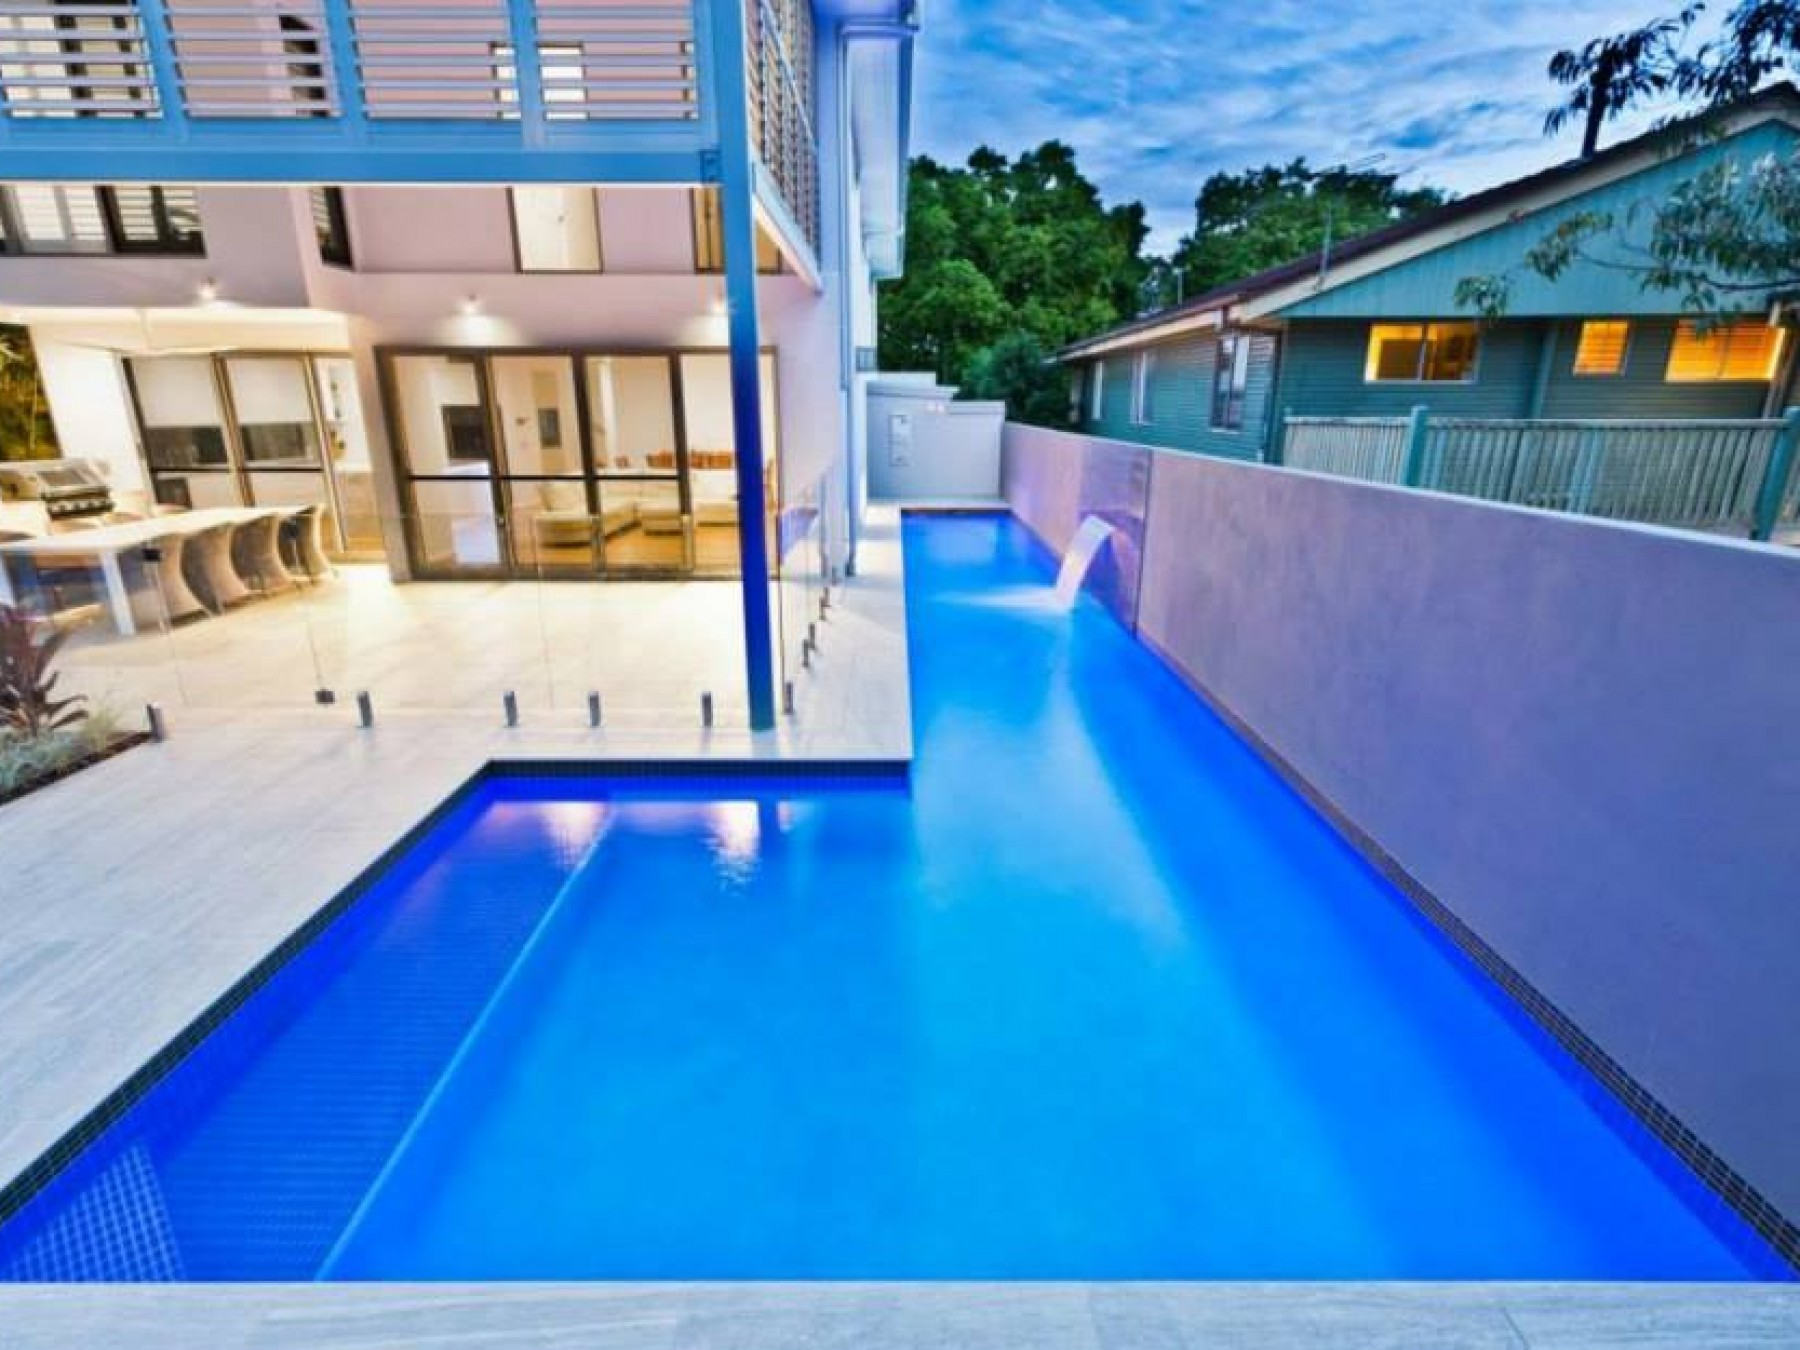 Selling or Leasing a pool in Victoria Vale